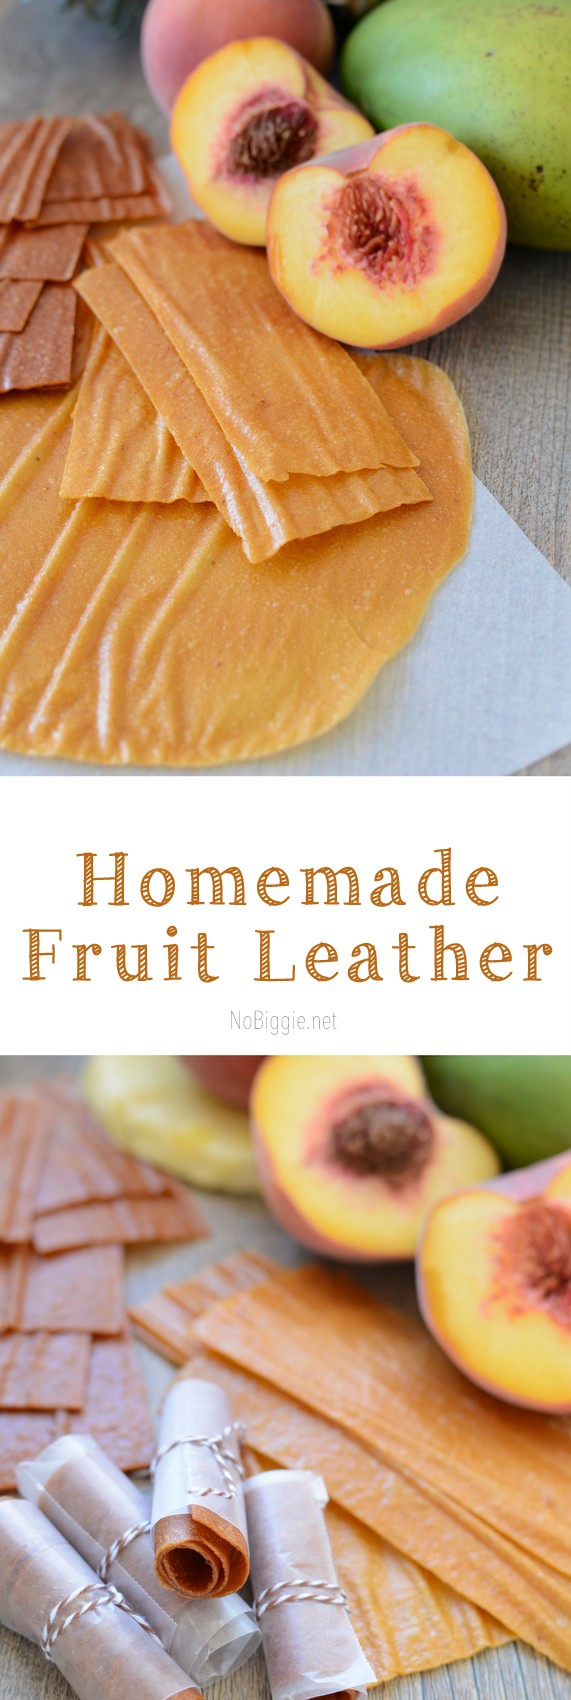 Homemade Fruit Leather with awesome flavor combinations | NoBiggie.net